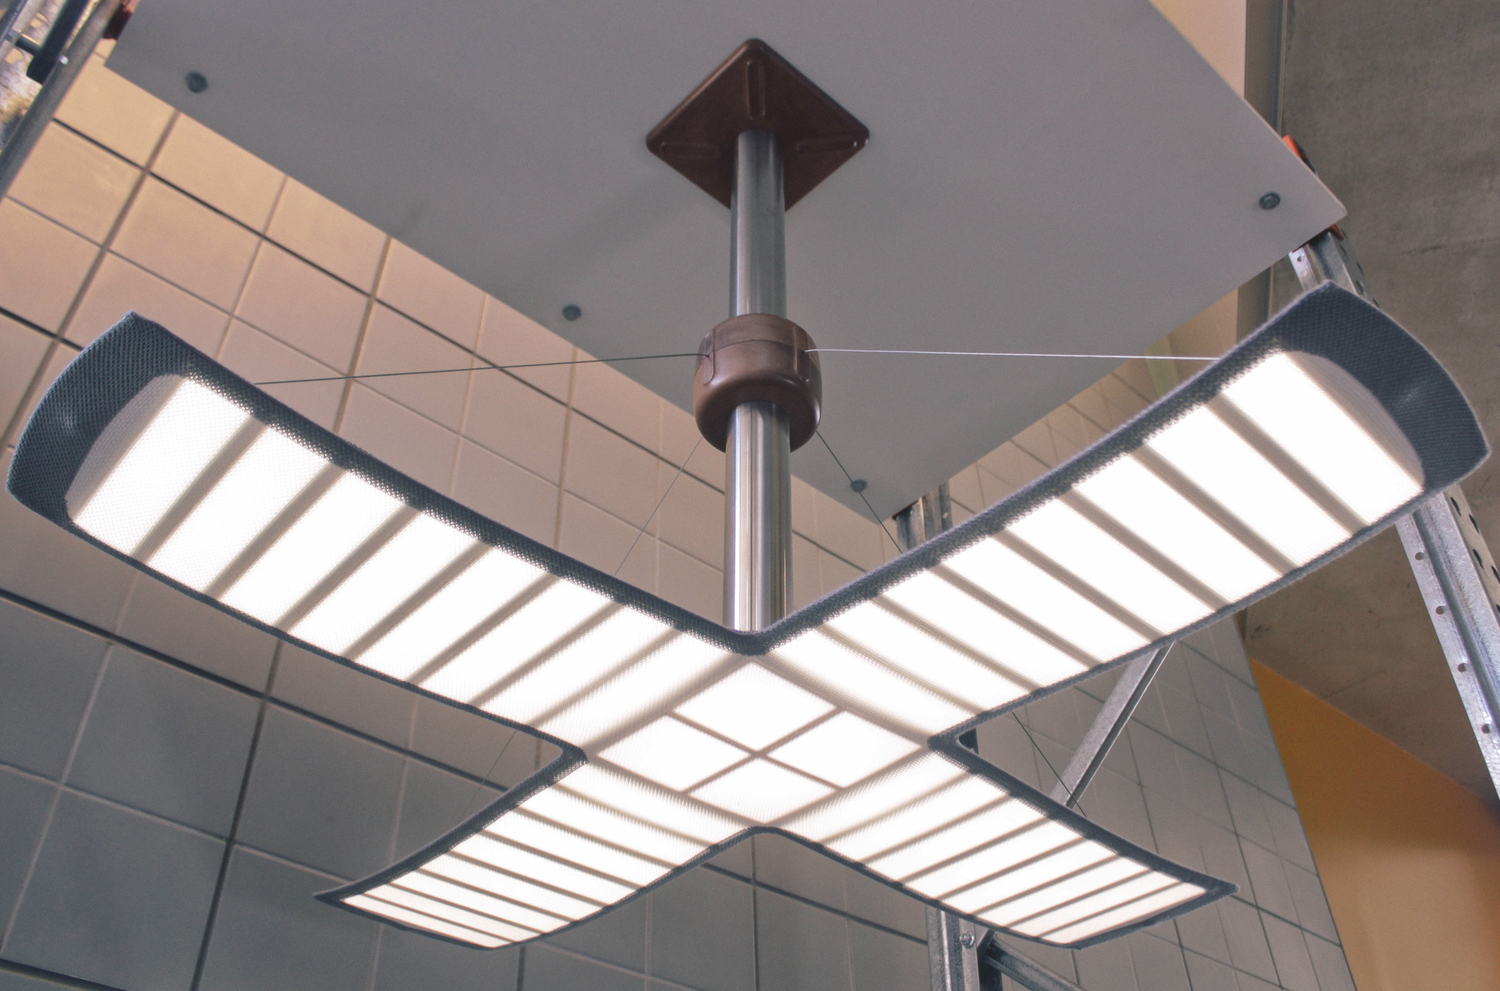 Picture of the pendant OLED light